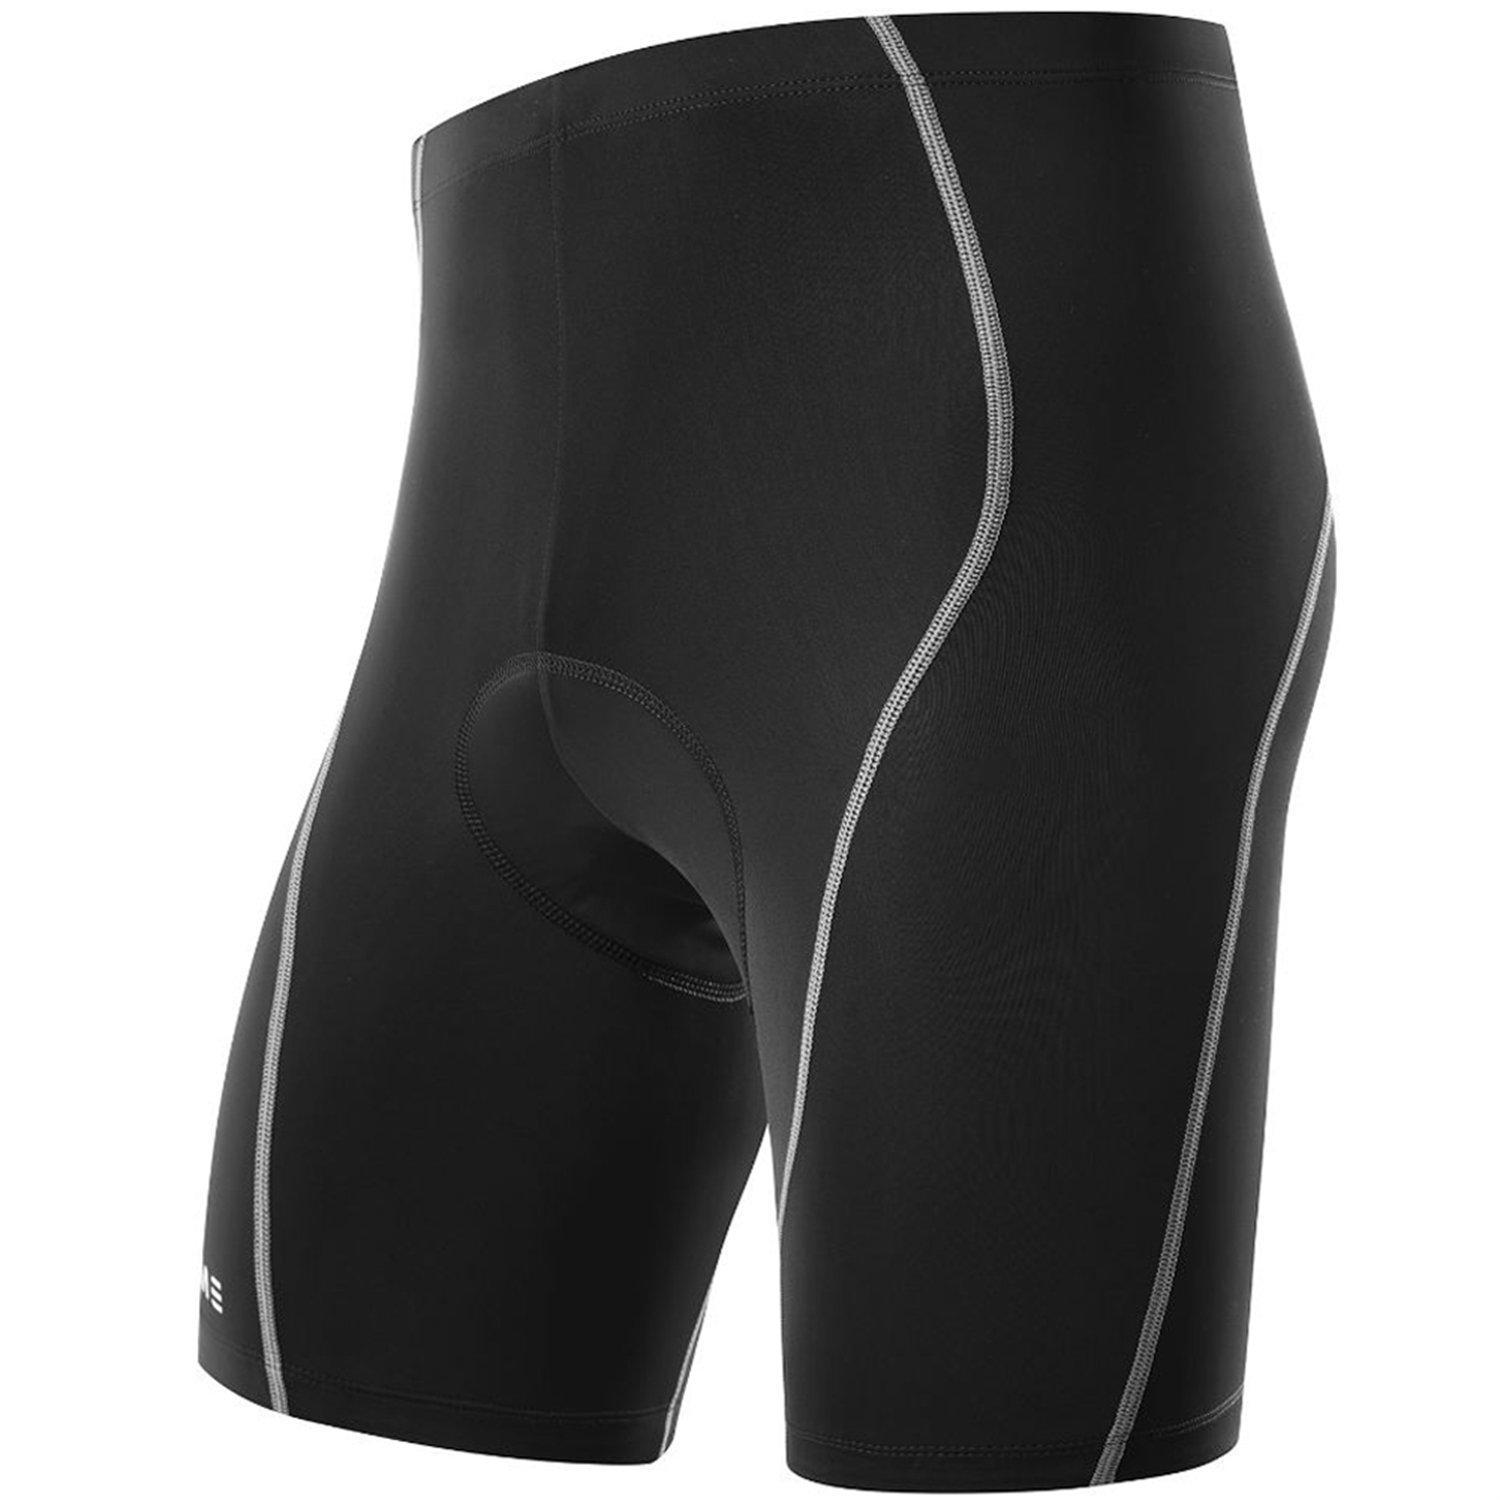 NOOYME men's Cycling Shorts 3D Gel Padded Bicycle Riding Men's Bike Shorts